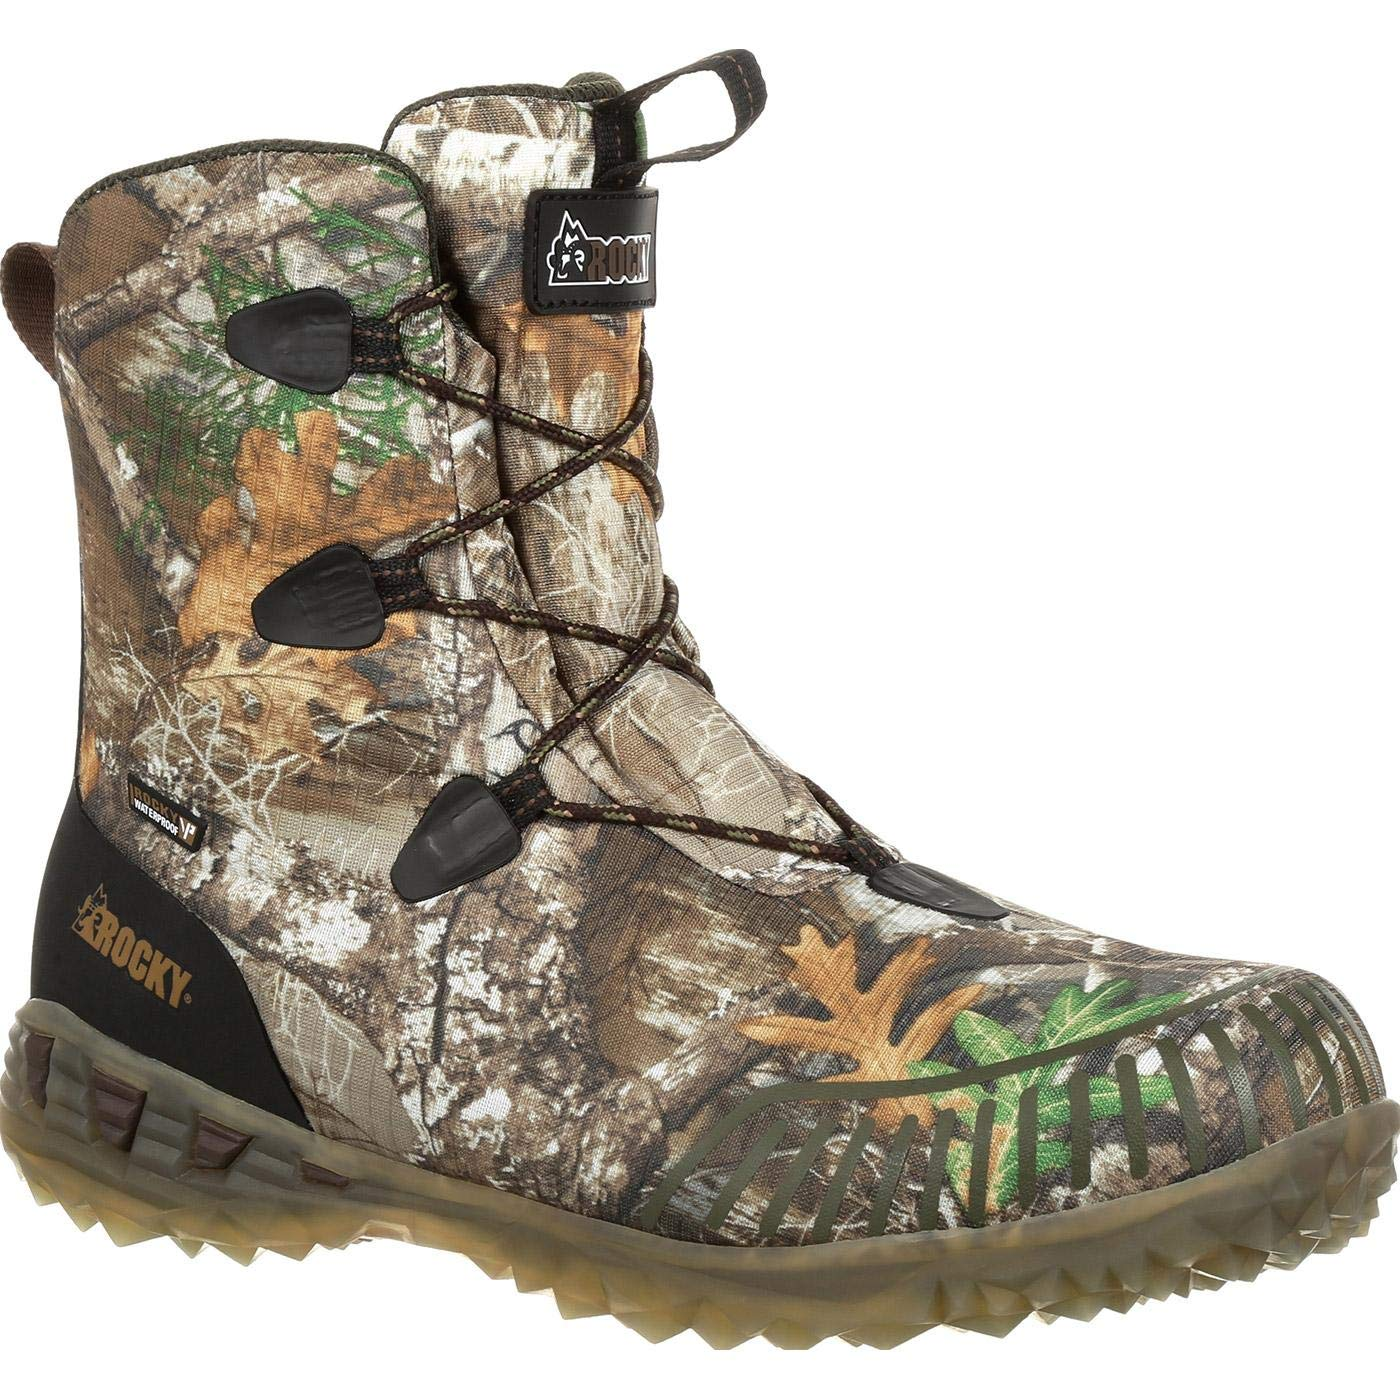 e04604ce804 Amazon.com: ROCKY Men's Broadhead Ex Waterproof Outdoor Boot Round ...